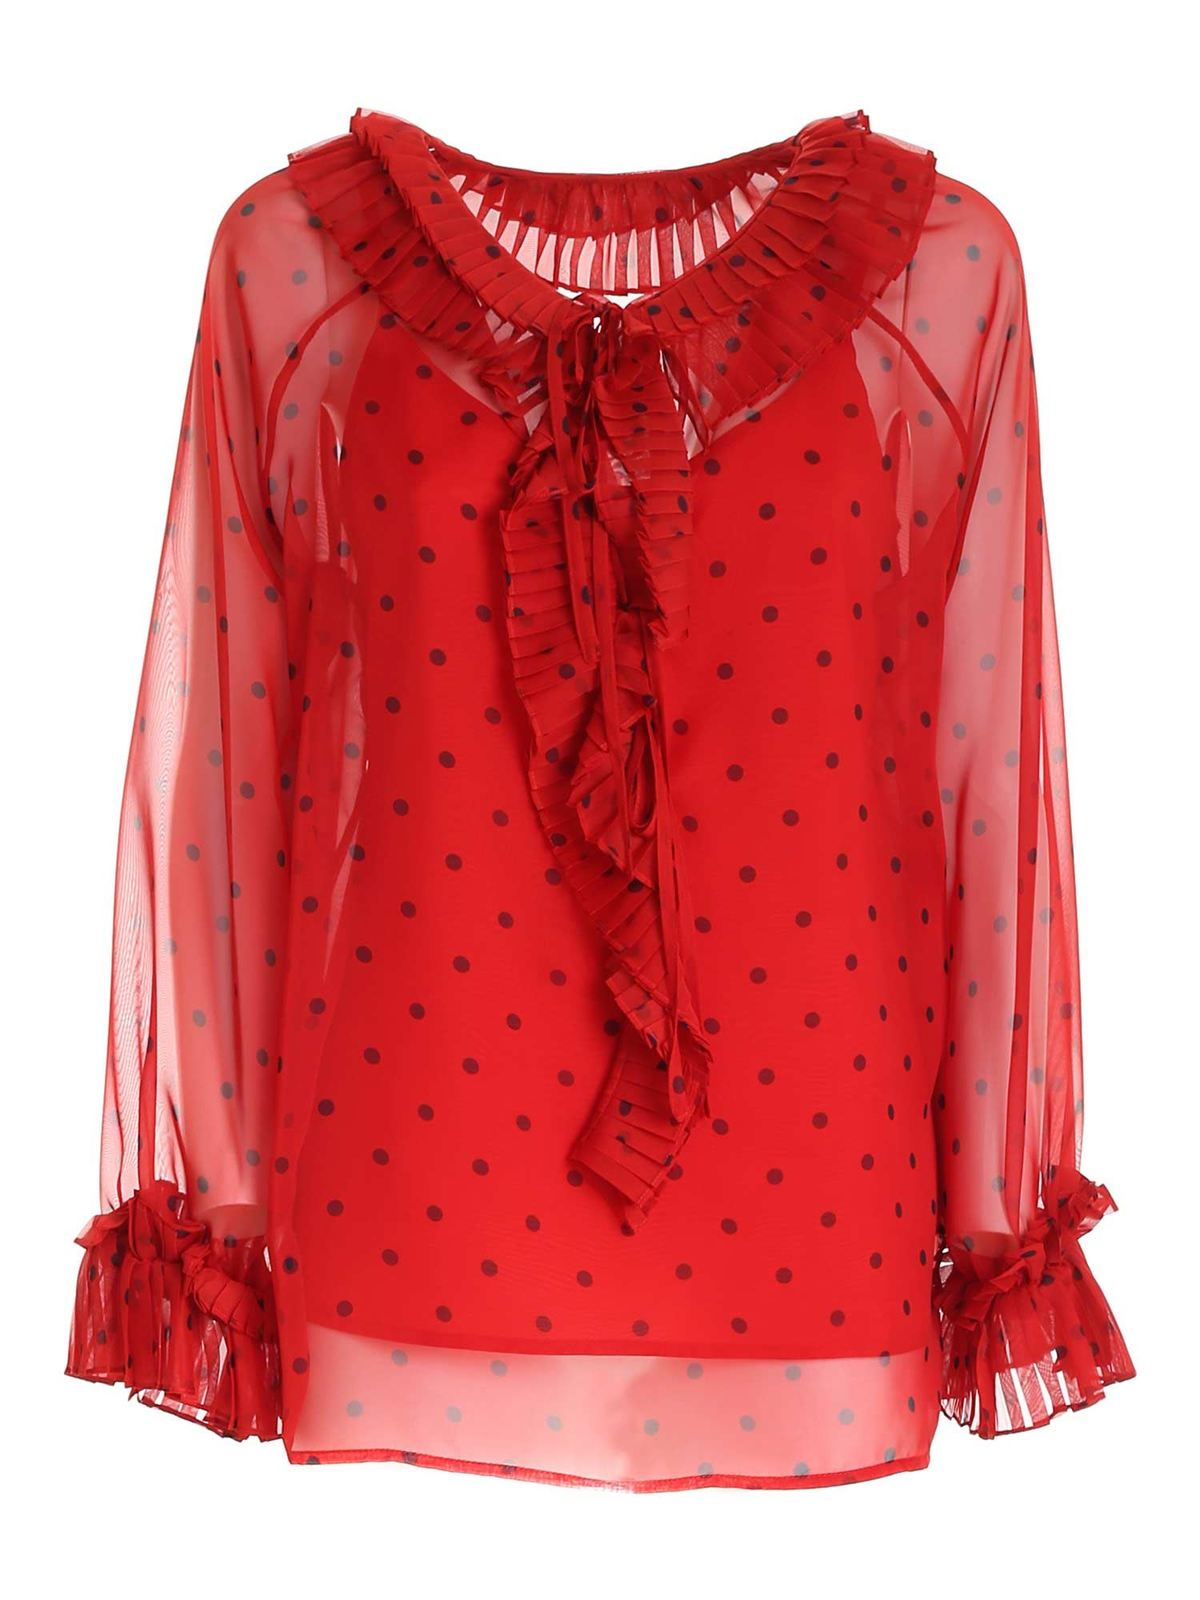 P.a.r.o.s.h. POLKA DOT BLOUSE IN RED